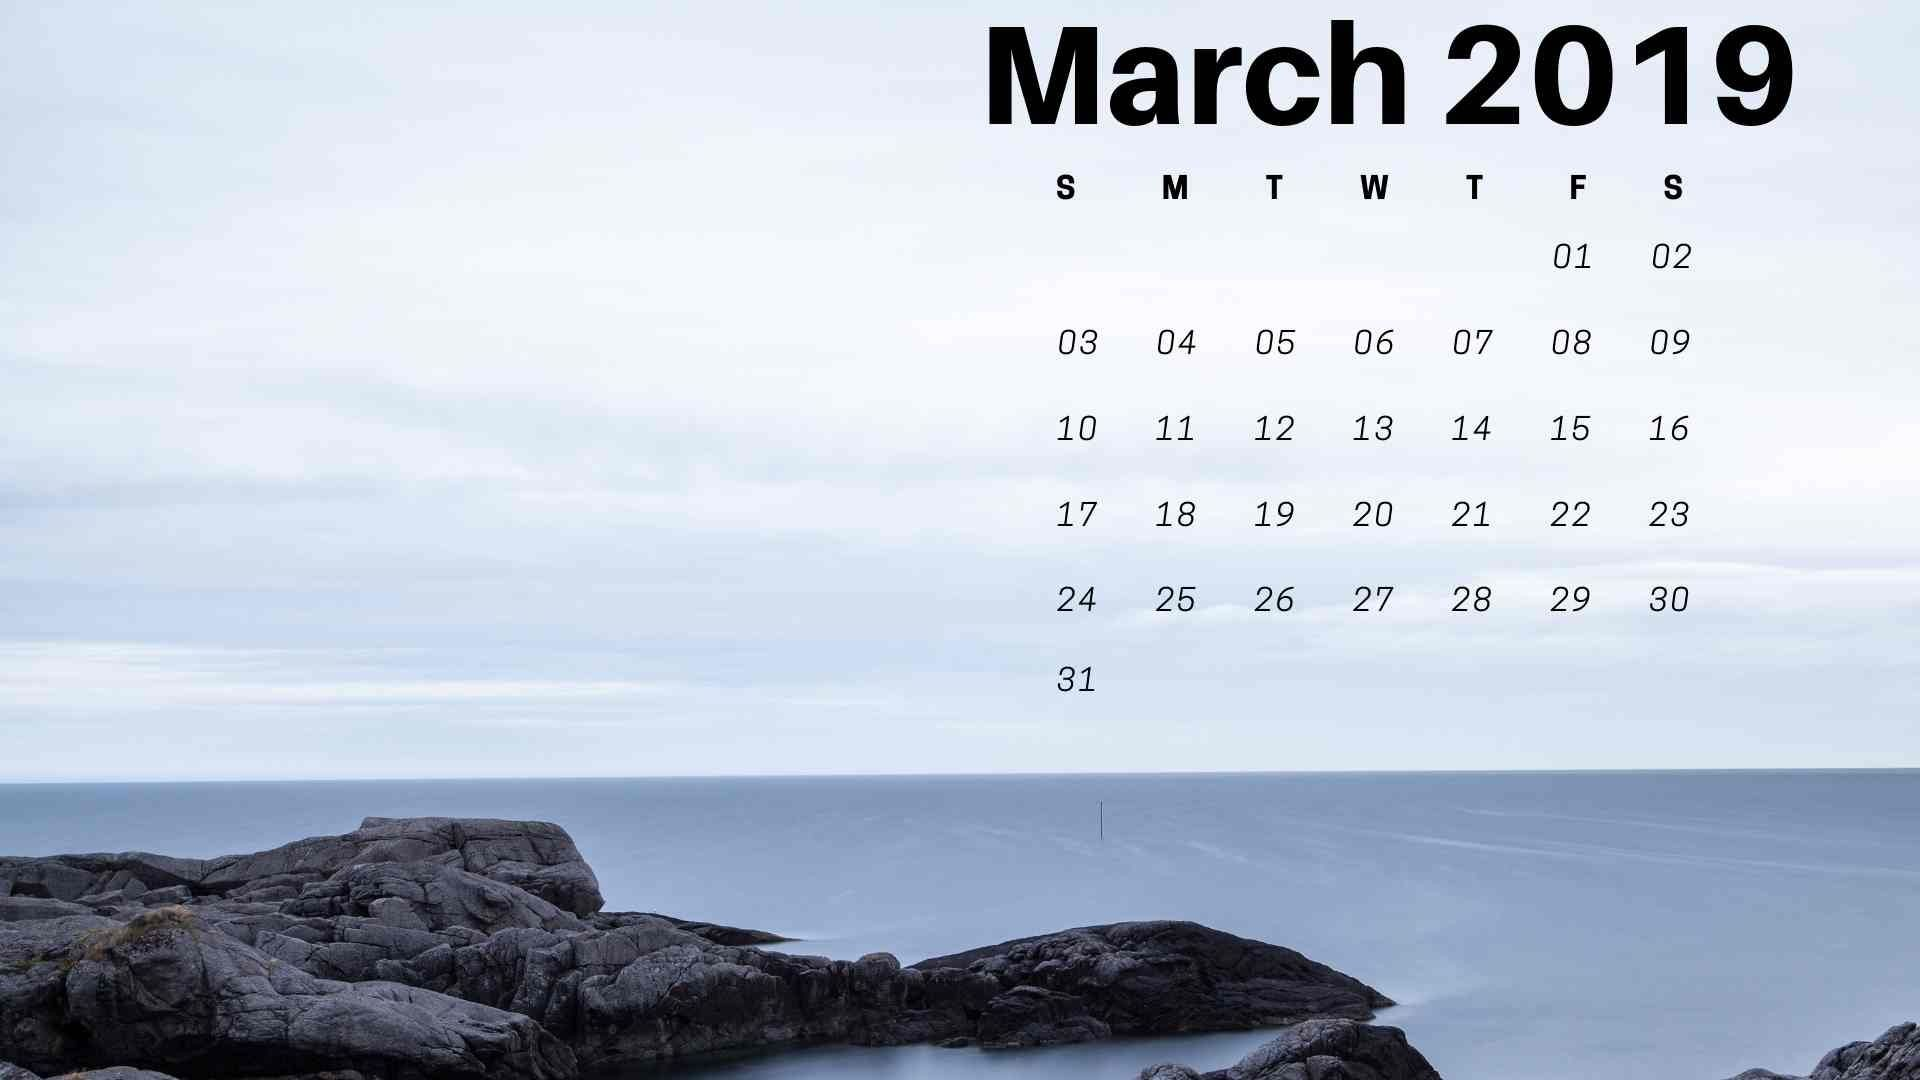 March 2019 Calendar Landscape Más Actual March 2019 Calendar Wallpaper Desktop March Calendar Calenda2019 Of March 2019 Calendar Landscape Recientes 2018 Hubble Space Telescope Advent Calendar the atlantic